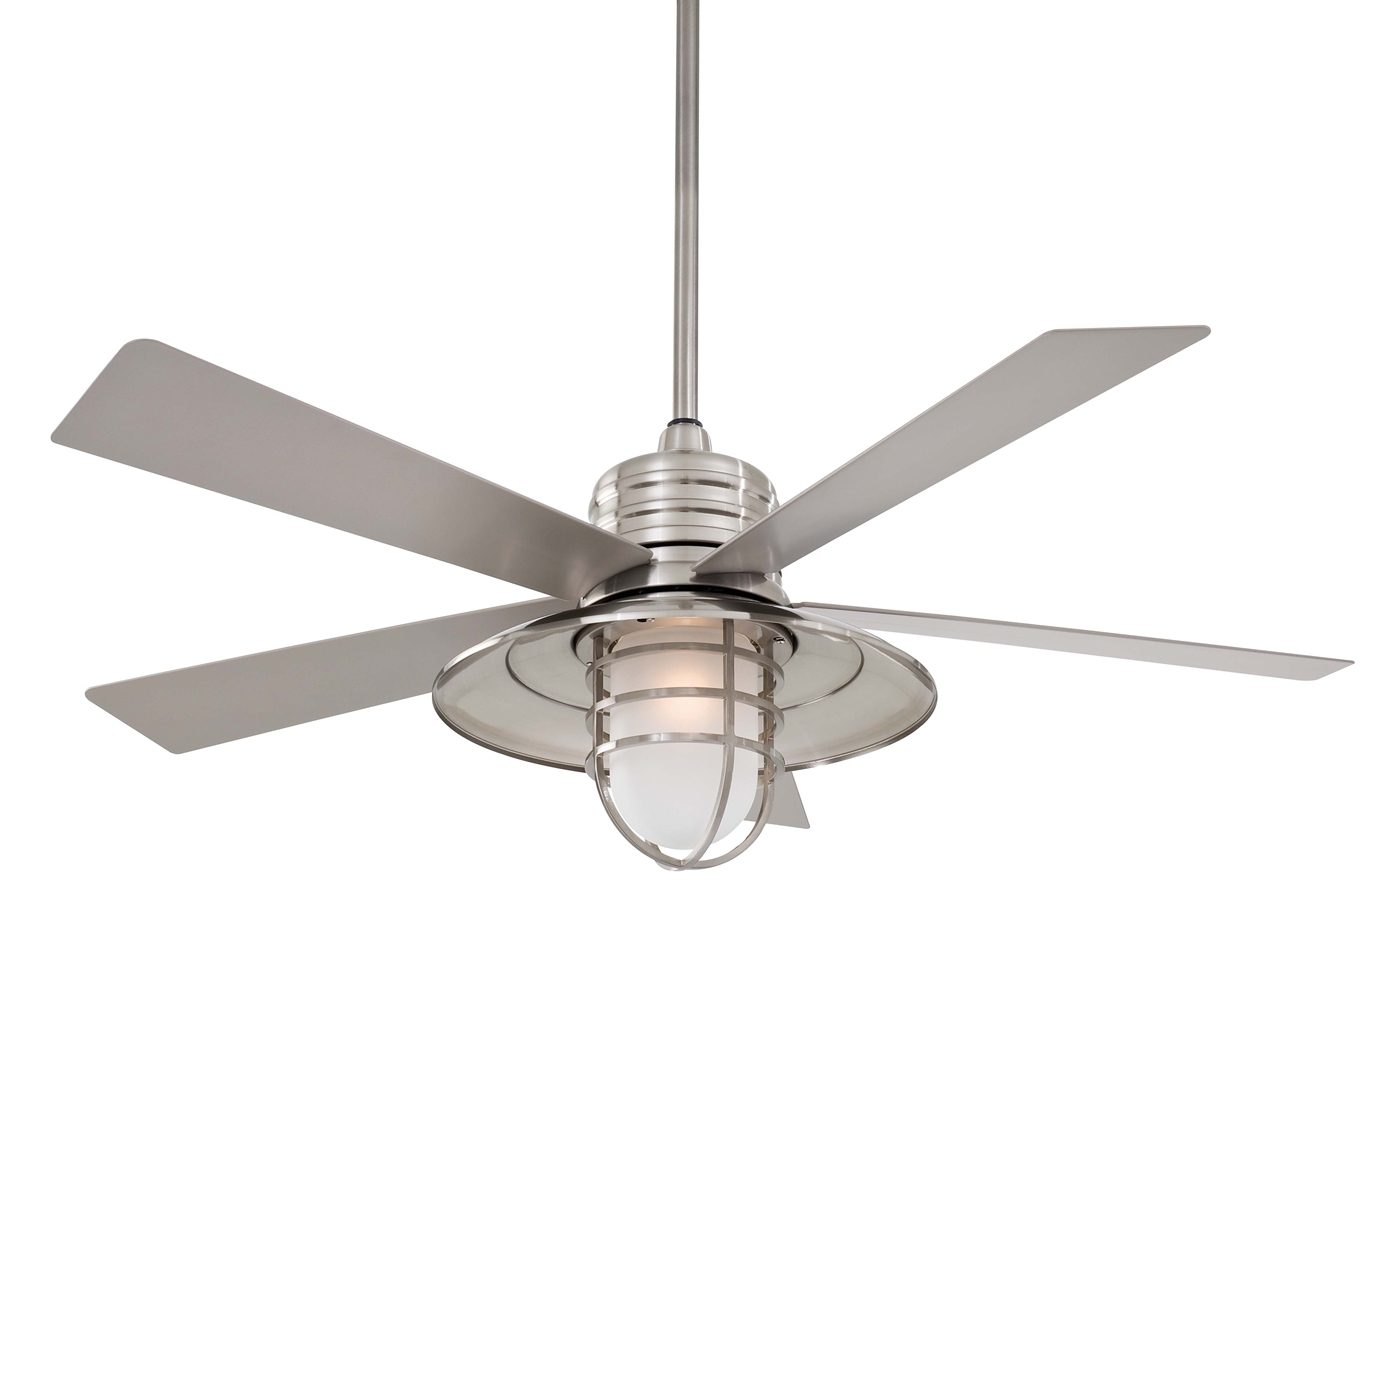 [%Mini Outdoor Ceiling Fan] – 28 Images – Ceiling Fan Fixtures 72 Inch Throughout Most Recent 72 Inch Outdoor Ceiling Fans With Light|72 Inch Outdoor Ceiling Fans With Light In Well Liked Mini Outdoor Ceiling Fan] – 28 Images – Ceiling Fan Fixtures 72 Inch|Widely Used 72 Inch Outdoor Ceiling Fans With Light Inside Mini Outdoor Ceiling Fan] – 28 Images – Ceiling Fan Fixtures 72 Inch|Most Current Mini Outdoor Ceiling Fan] – 28 Images – Ceiling Fan Fixtures 72 Inch Throughout 72 Inch Outdoor Ceiling Fans With Light%] (View 1 of 20)